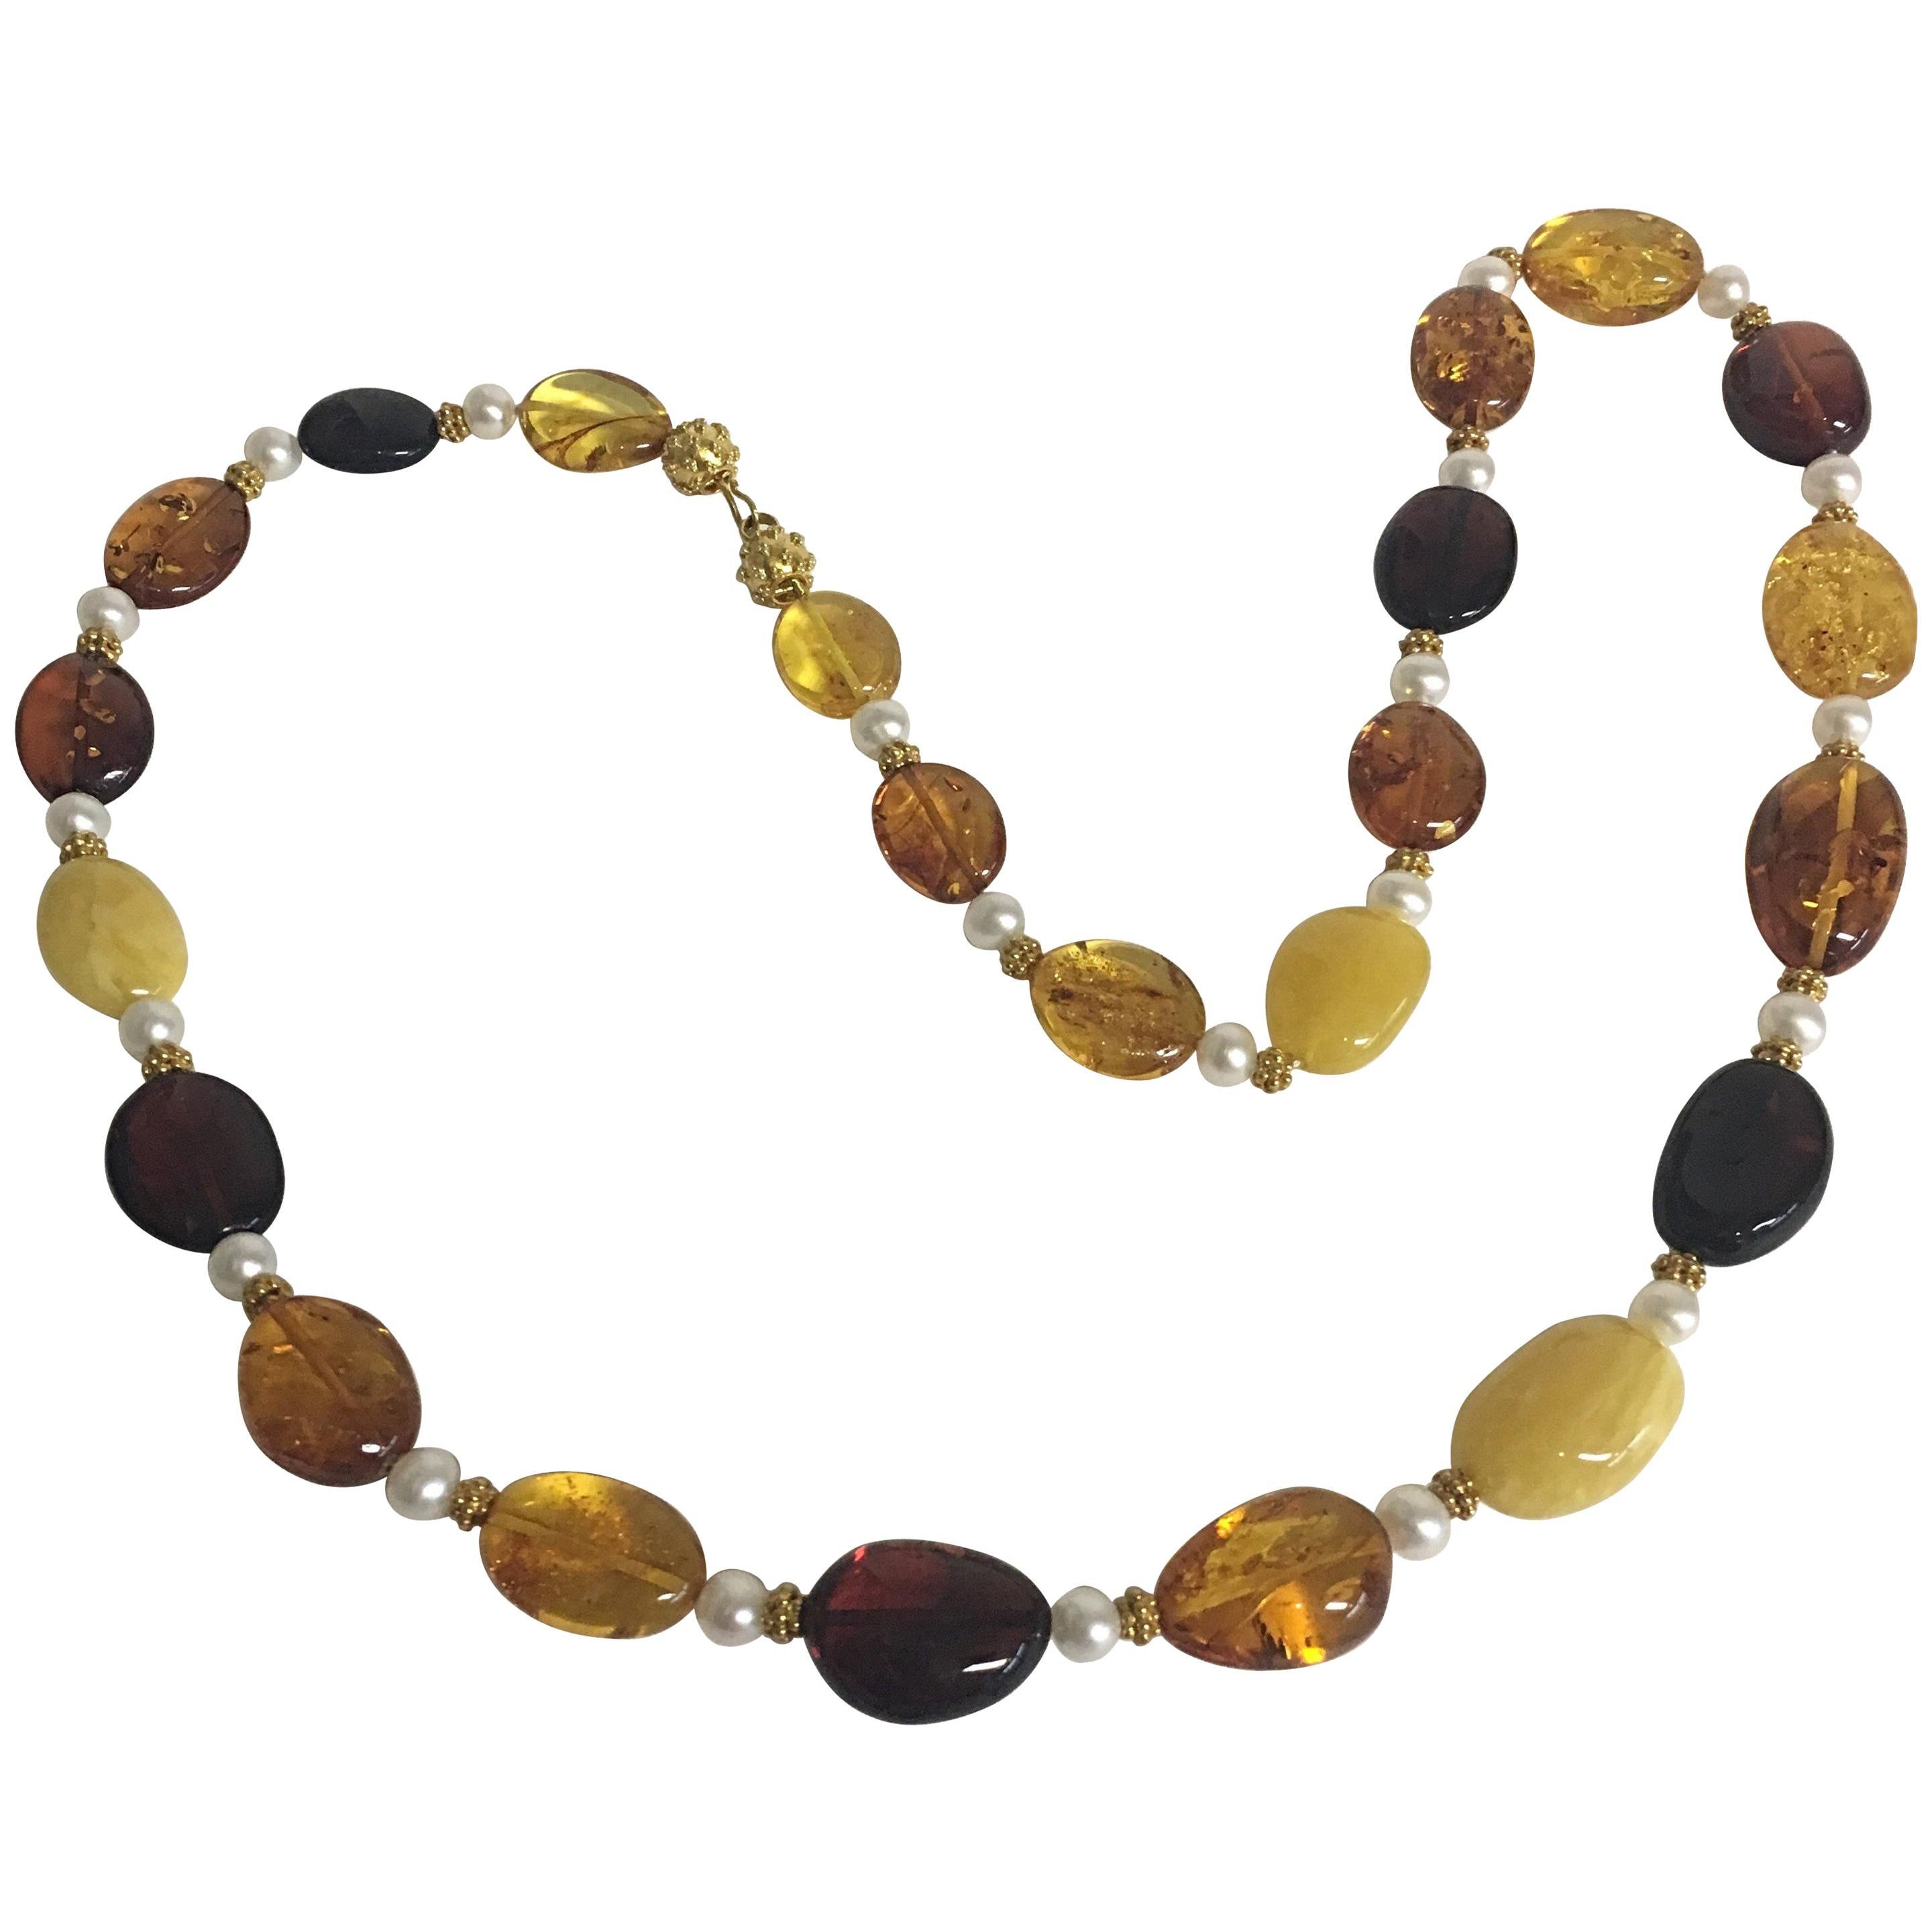 Necklace with Baltic Amber & 18 Karat Gold Beads & Freshwater Pearls